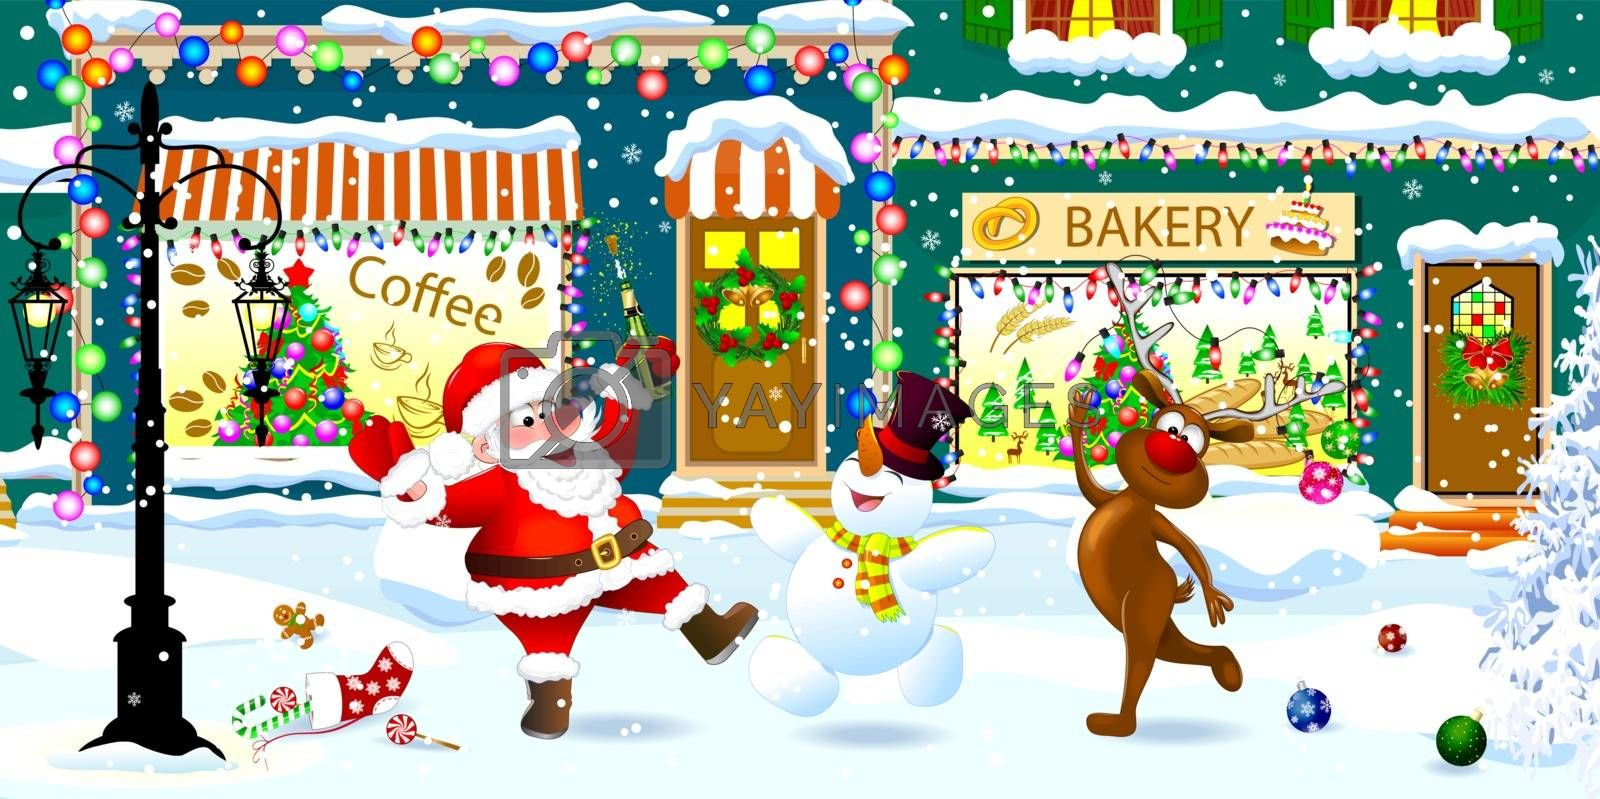 Joyful Santa Claus, deer and snowman on a snowy city street. Night city decorated for Christmas.